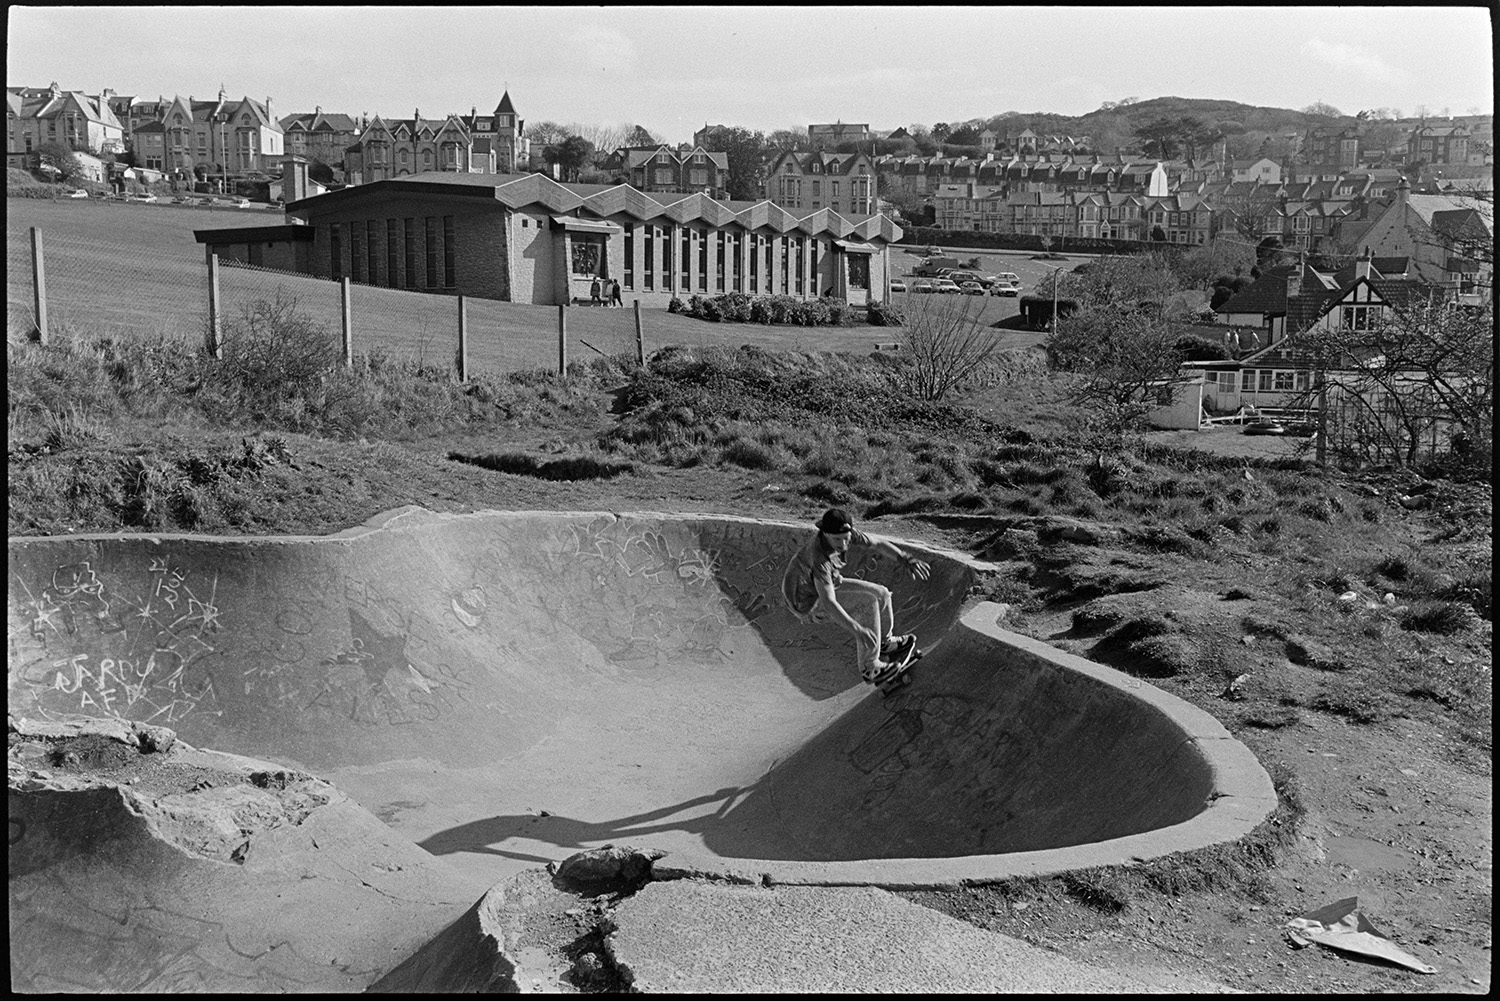 Skateboarders at skate park near sea. <br /> [A skateboarder skating on a concrete ramp at a skate park in Ilfracombe. The town of Ilfracombe can be seen in the background.]